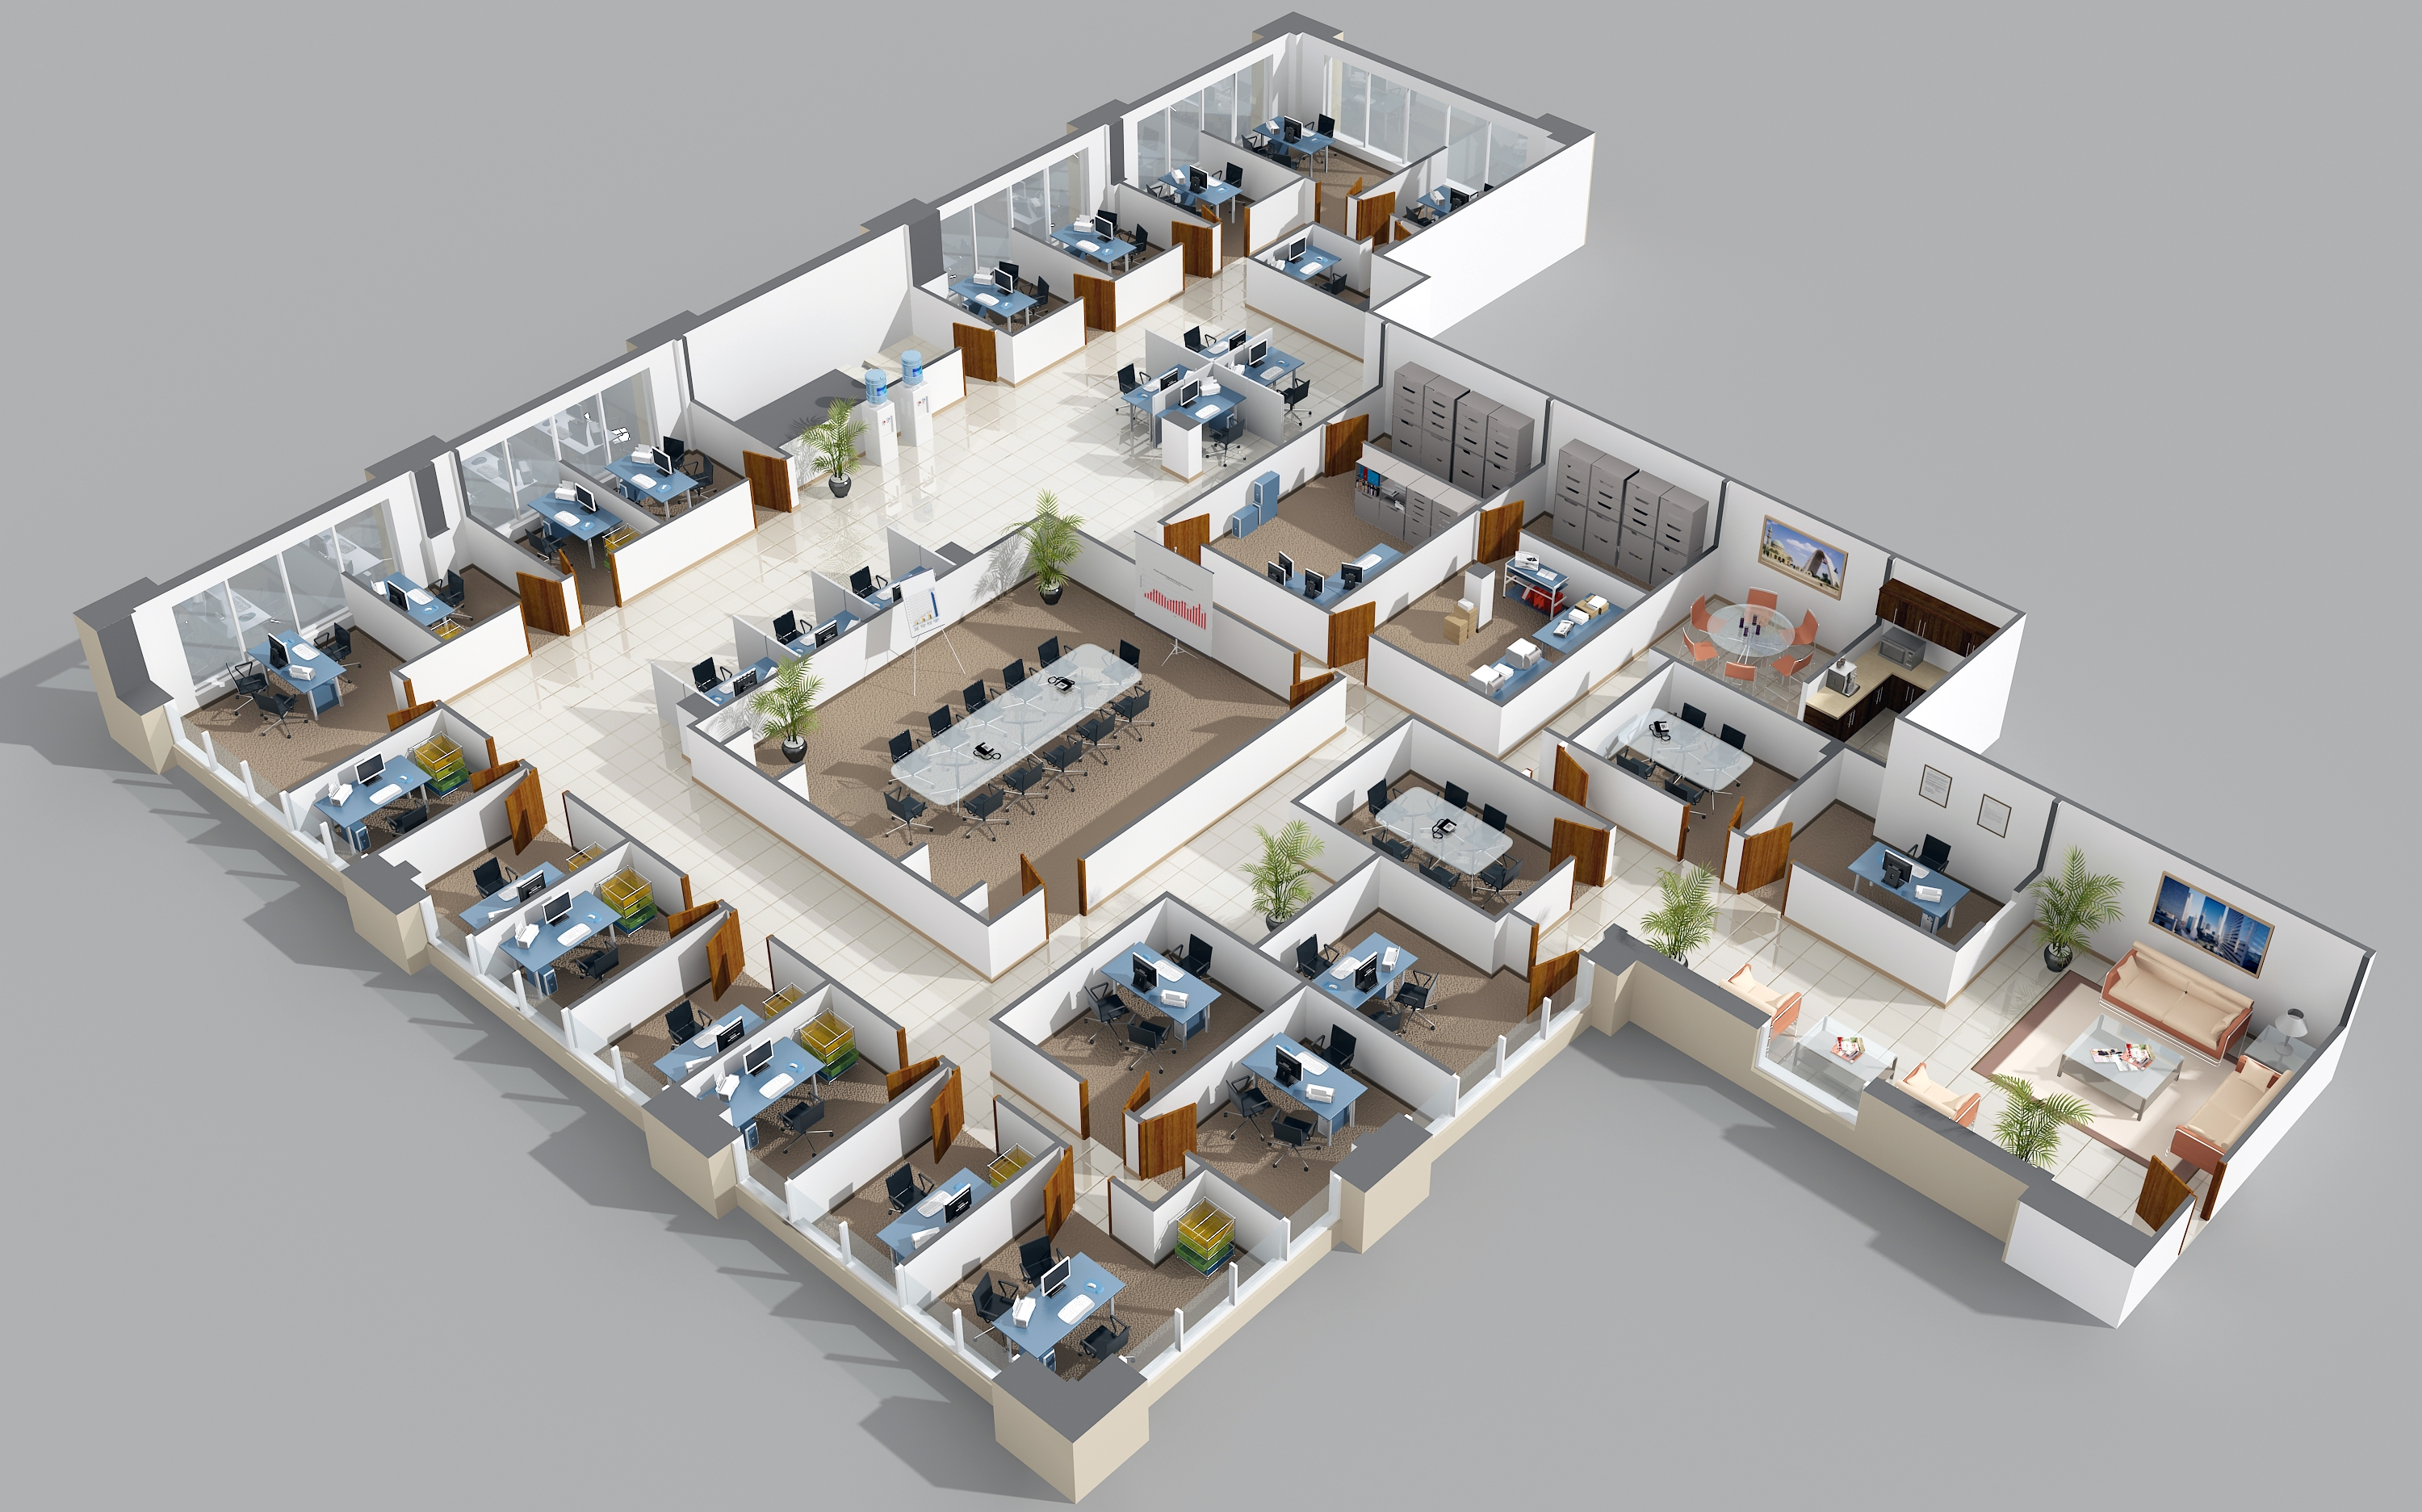 office floor layout. 3d office floor plan using plans on your openofficespace property listings layout r